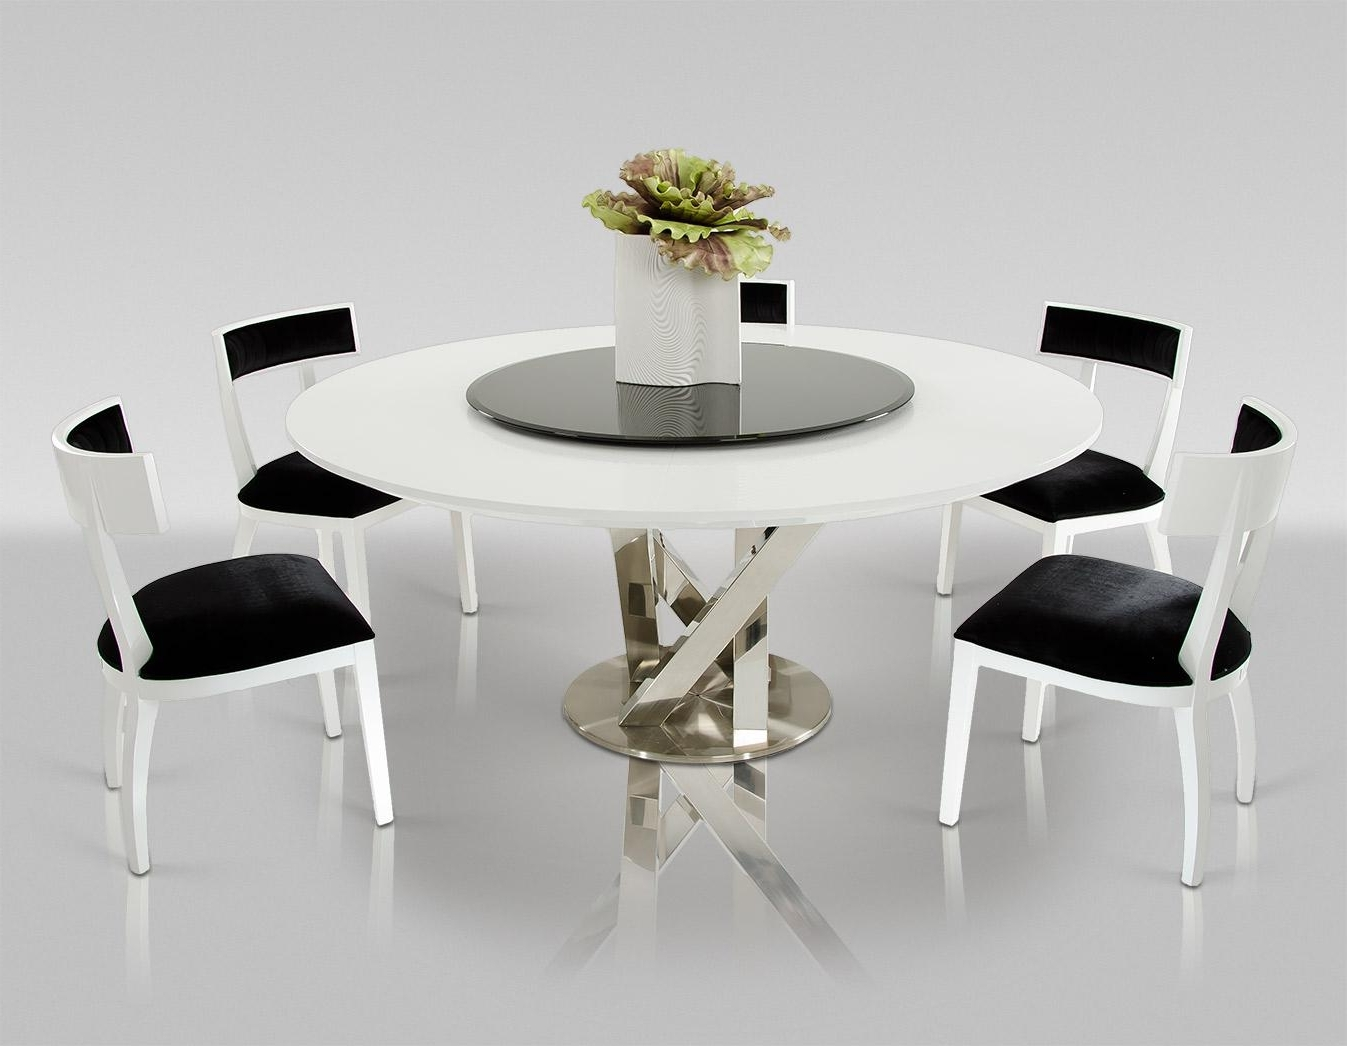 Ax Spiral Modern Round White Dining Table With Lazy Susan Dining Set With Regard To Current Contemporary Dining Room Tables And Chairs (View 24 of 25)